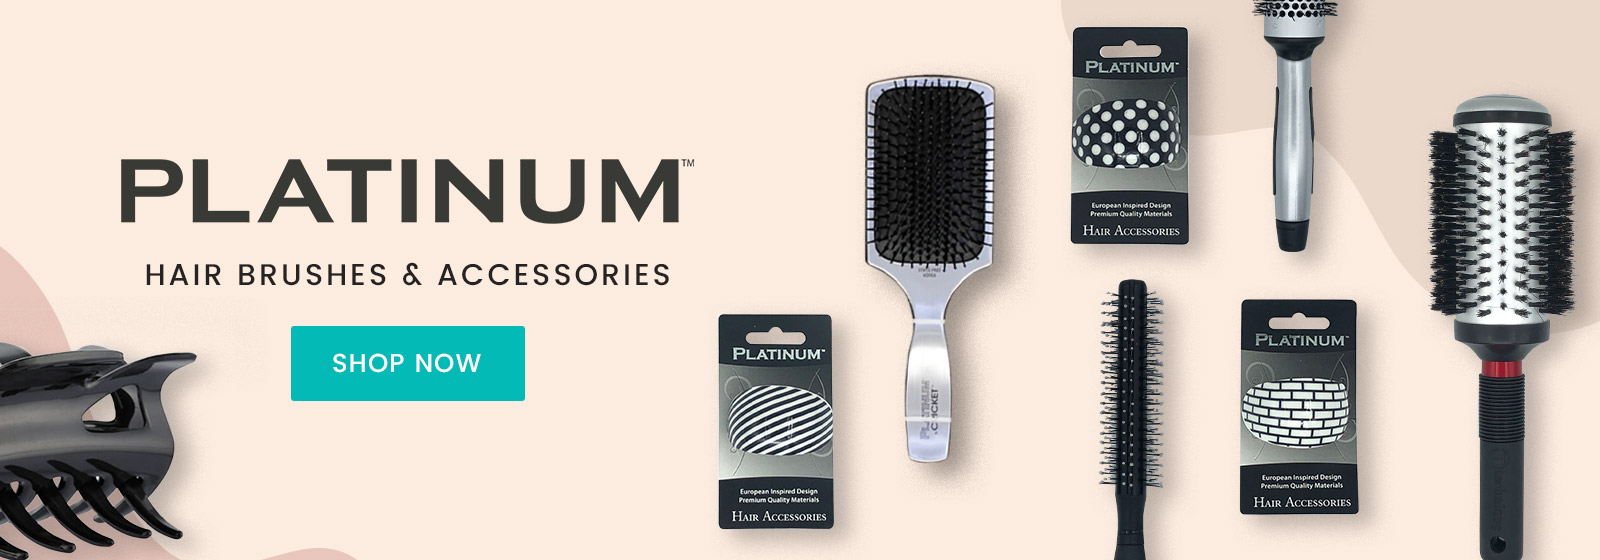 New Platinum Brushes & Accessories  Available At Catwalk Hair & Beauty Store Australia